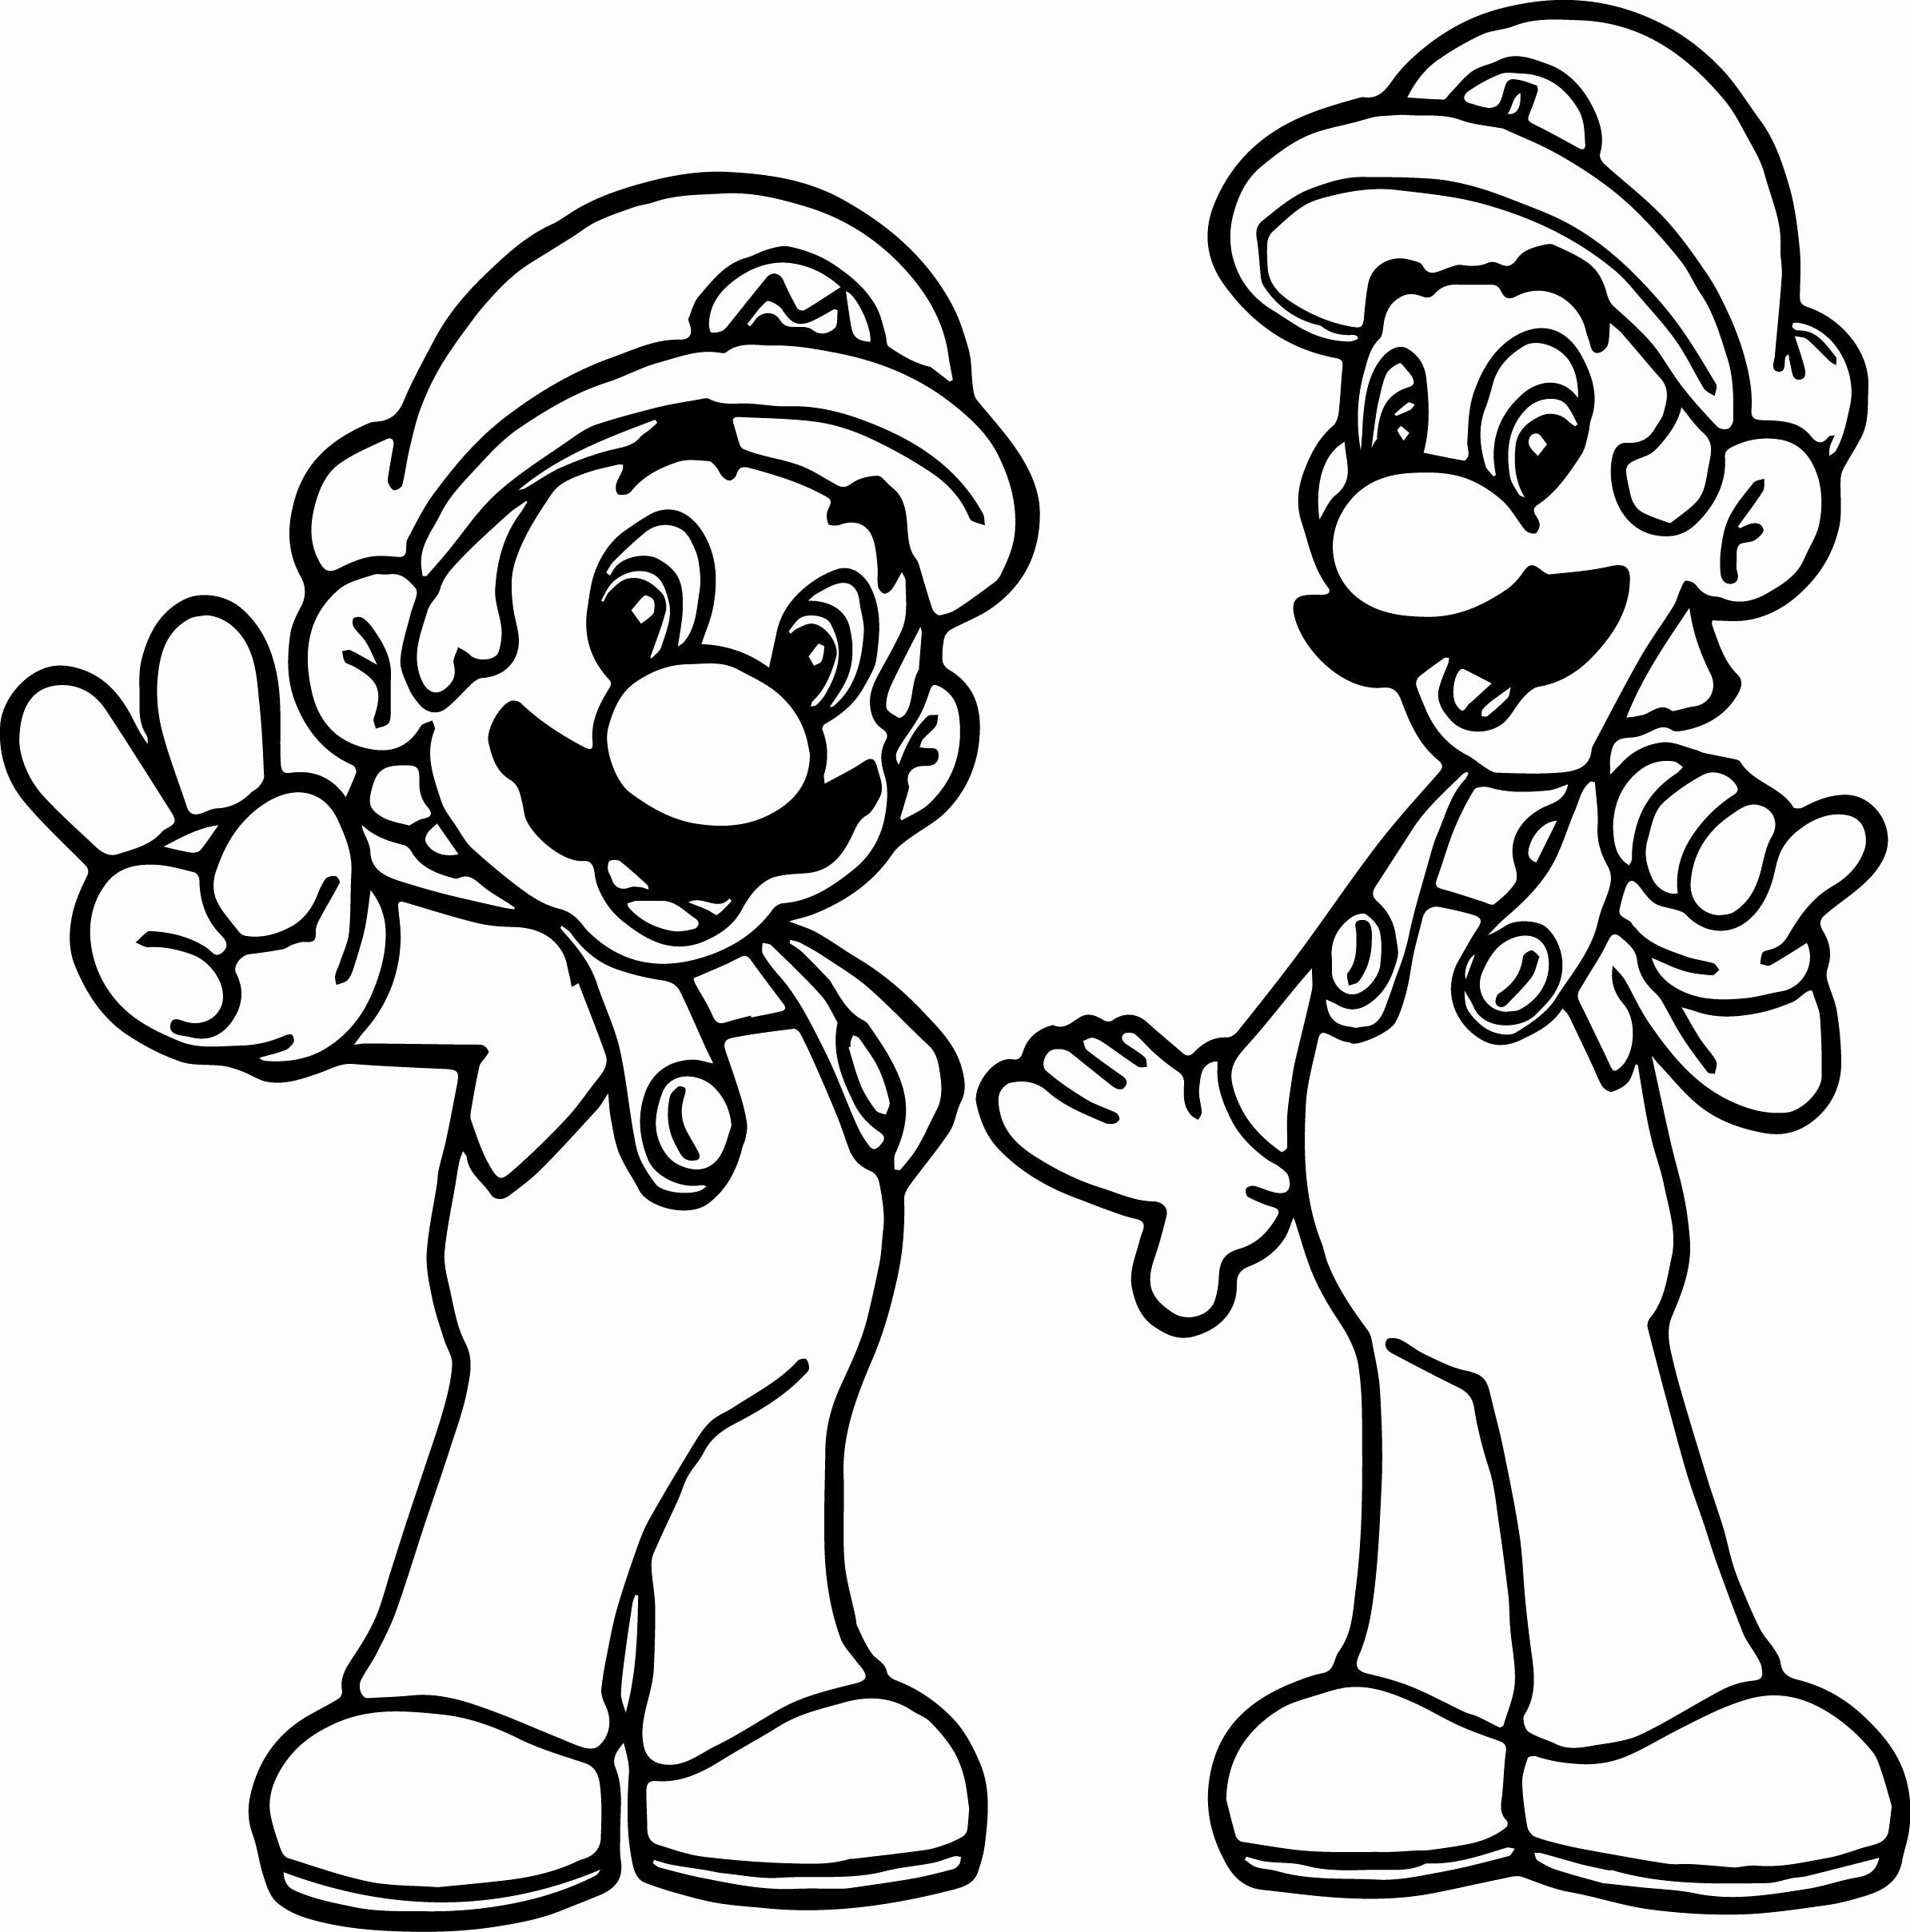 Super Mario Coloring Book Beautiful Mario Odyssey Coloring Pages Printable Super Mario Coloring Pages Mario Coloring Pages Unicorn Coloring Pages